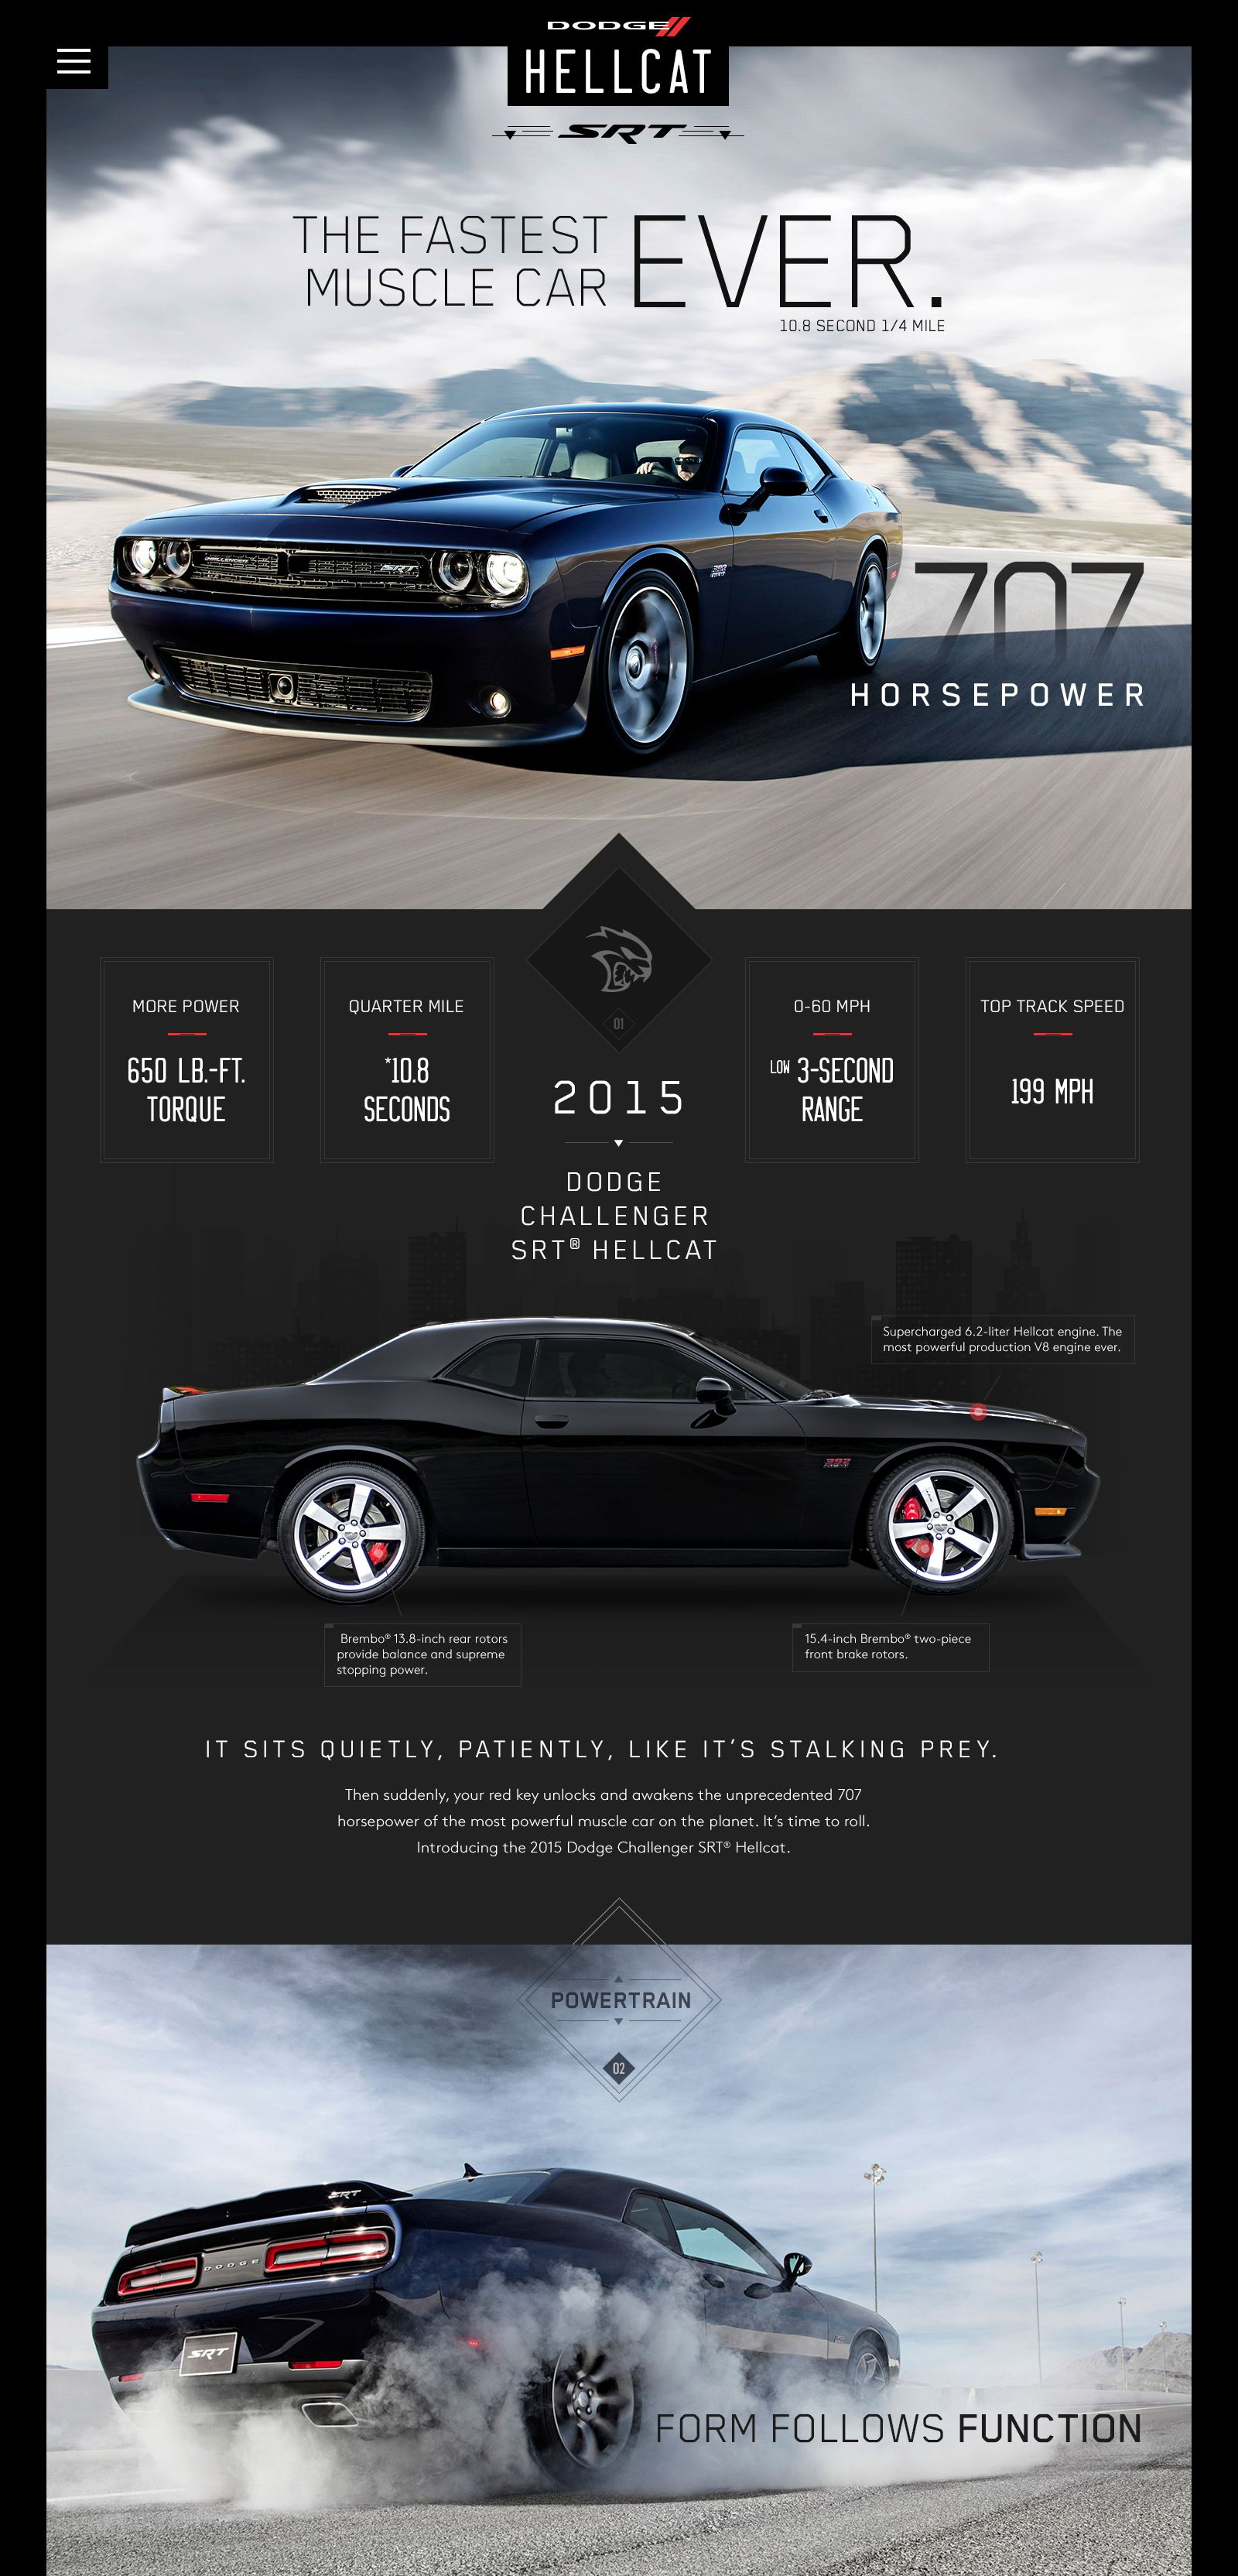 Pin By Taghouri Dassah On Toys Hellcat Classic Cars Dodge